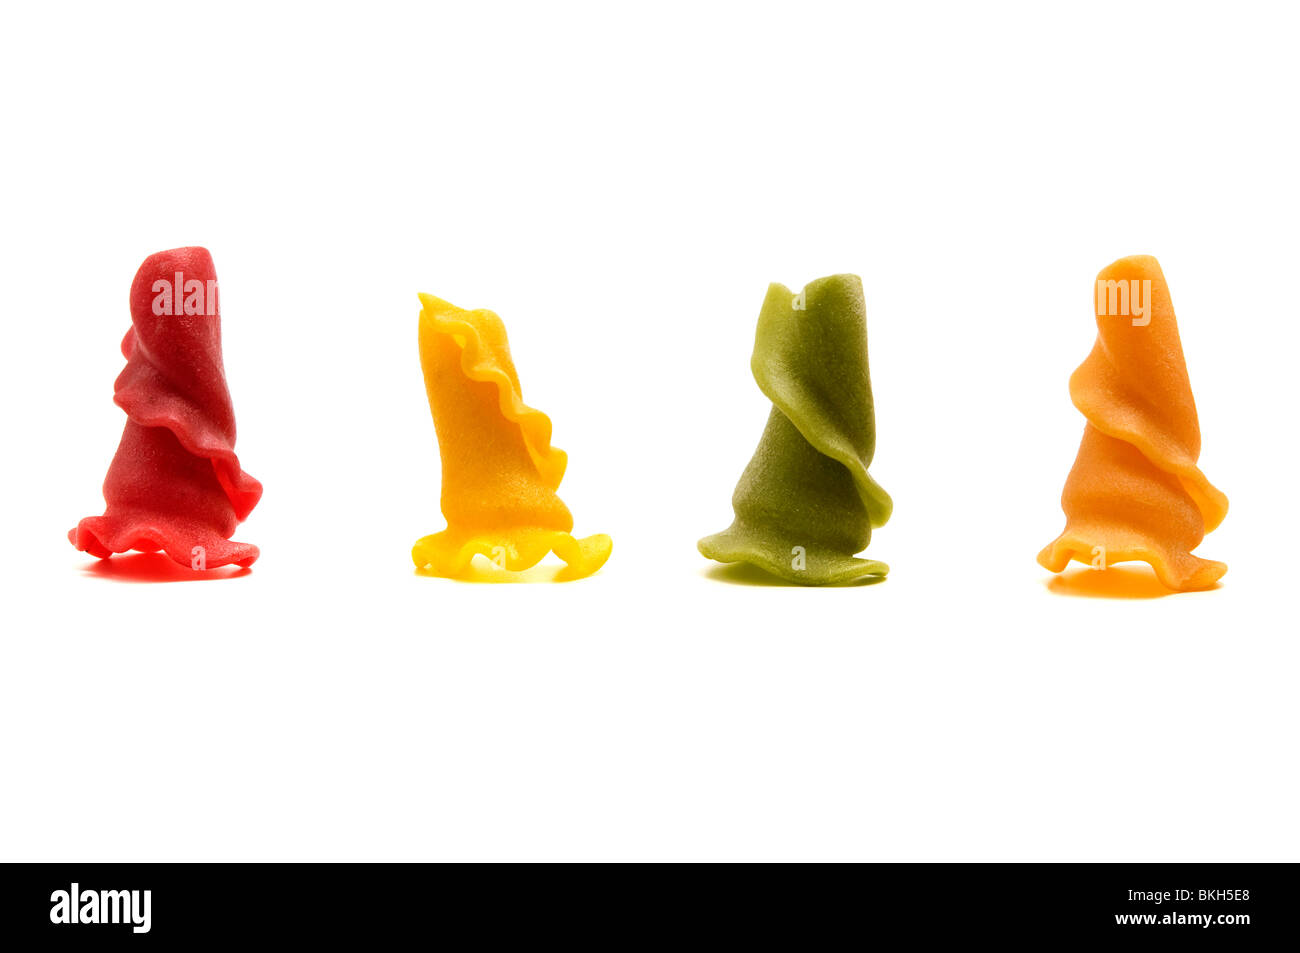 Mixed weird shaped pasta on a white background (Red = Tomato, Yellow = Durum wheat, Green = Spinach, Orange = Turmeric) - Stock Image